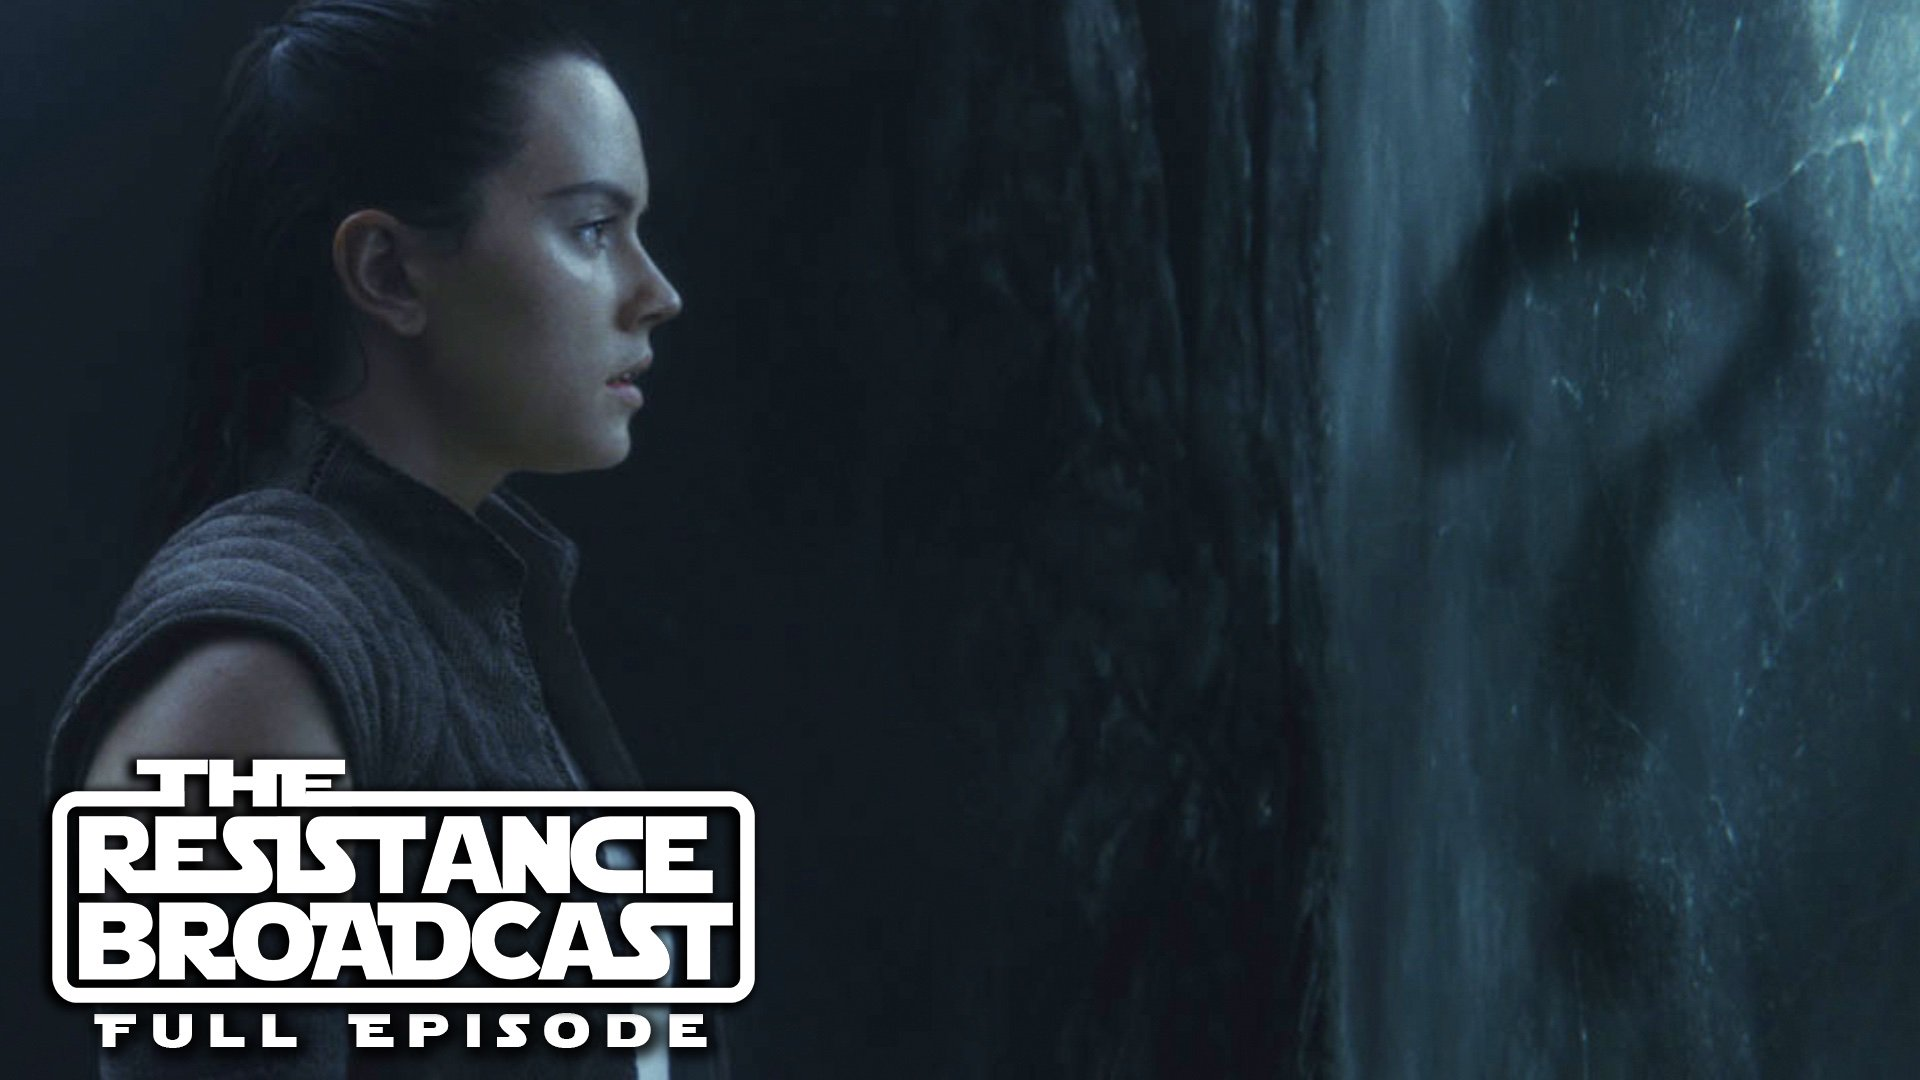 The Resistance Broadcast The Rise Of Skywalker Will Answer All Questions About Rey S Parents Star Wars News Net